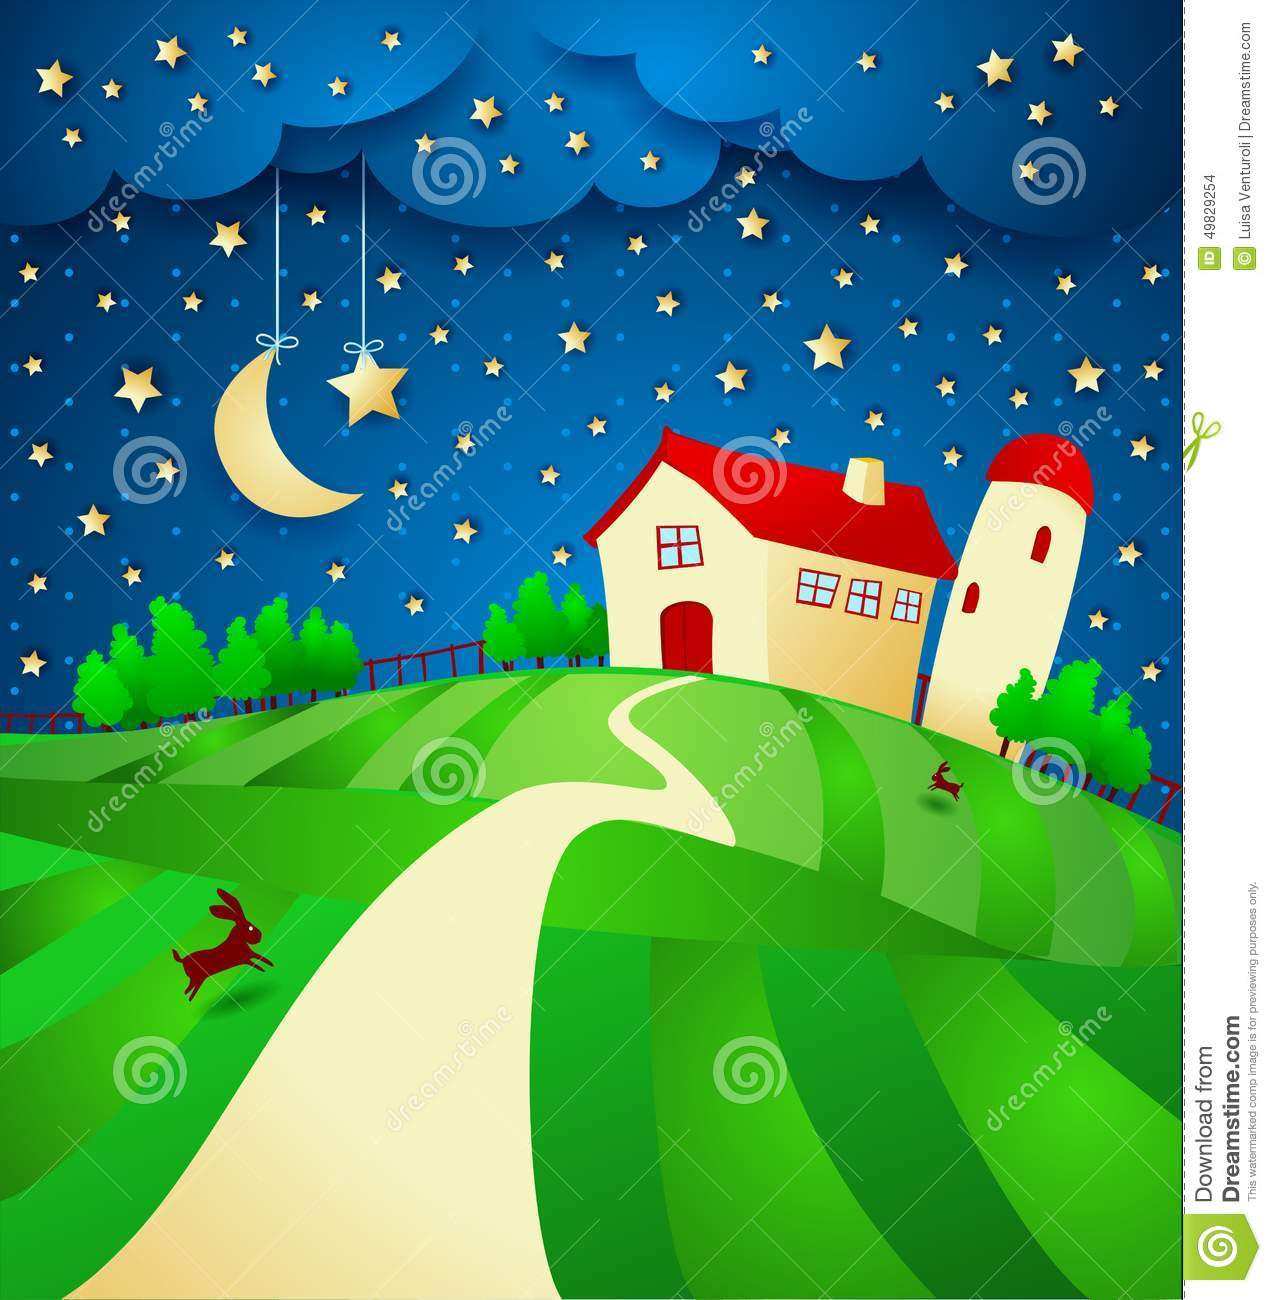 Night Landscape With Farm And Starry Sky Stock Vector - Illustration ... for Farm Landscape Clip Art  279cpg